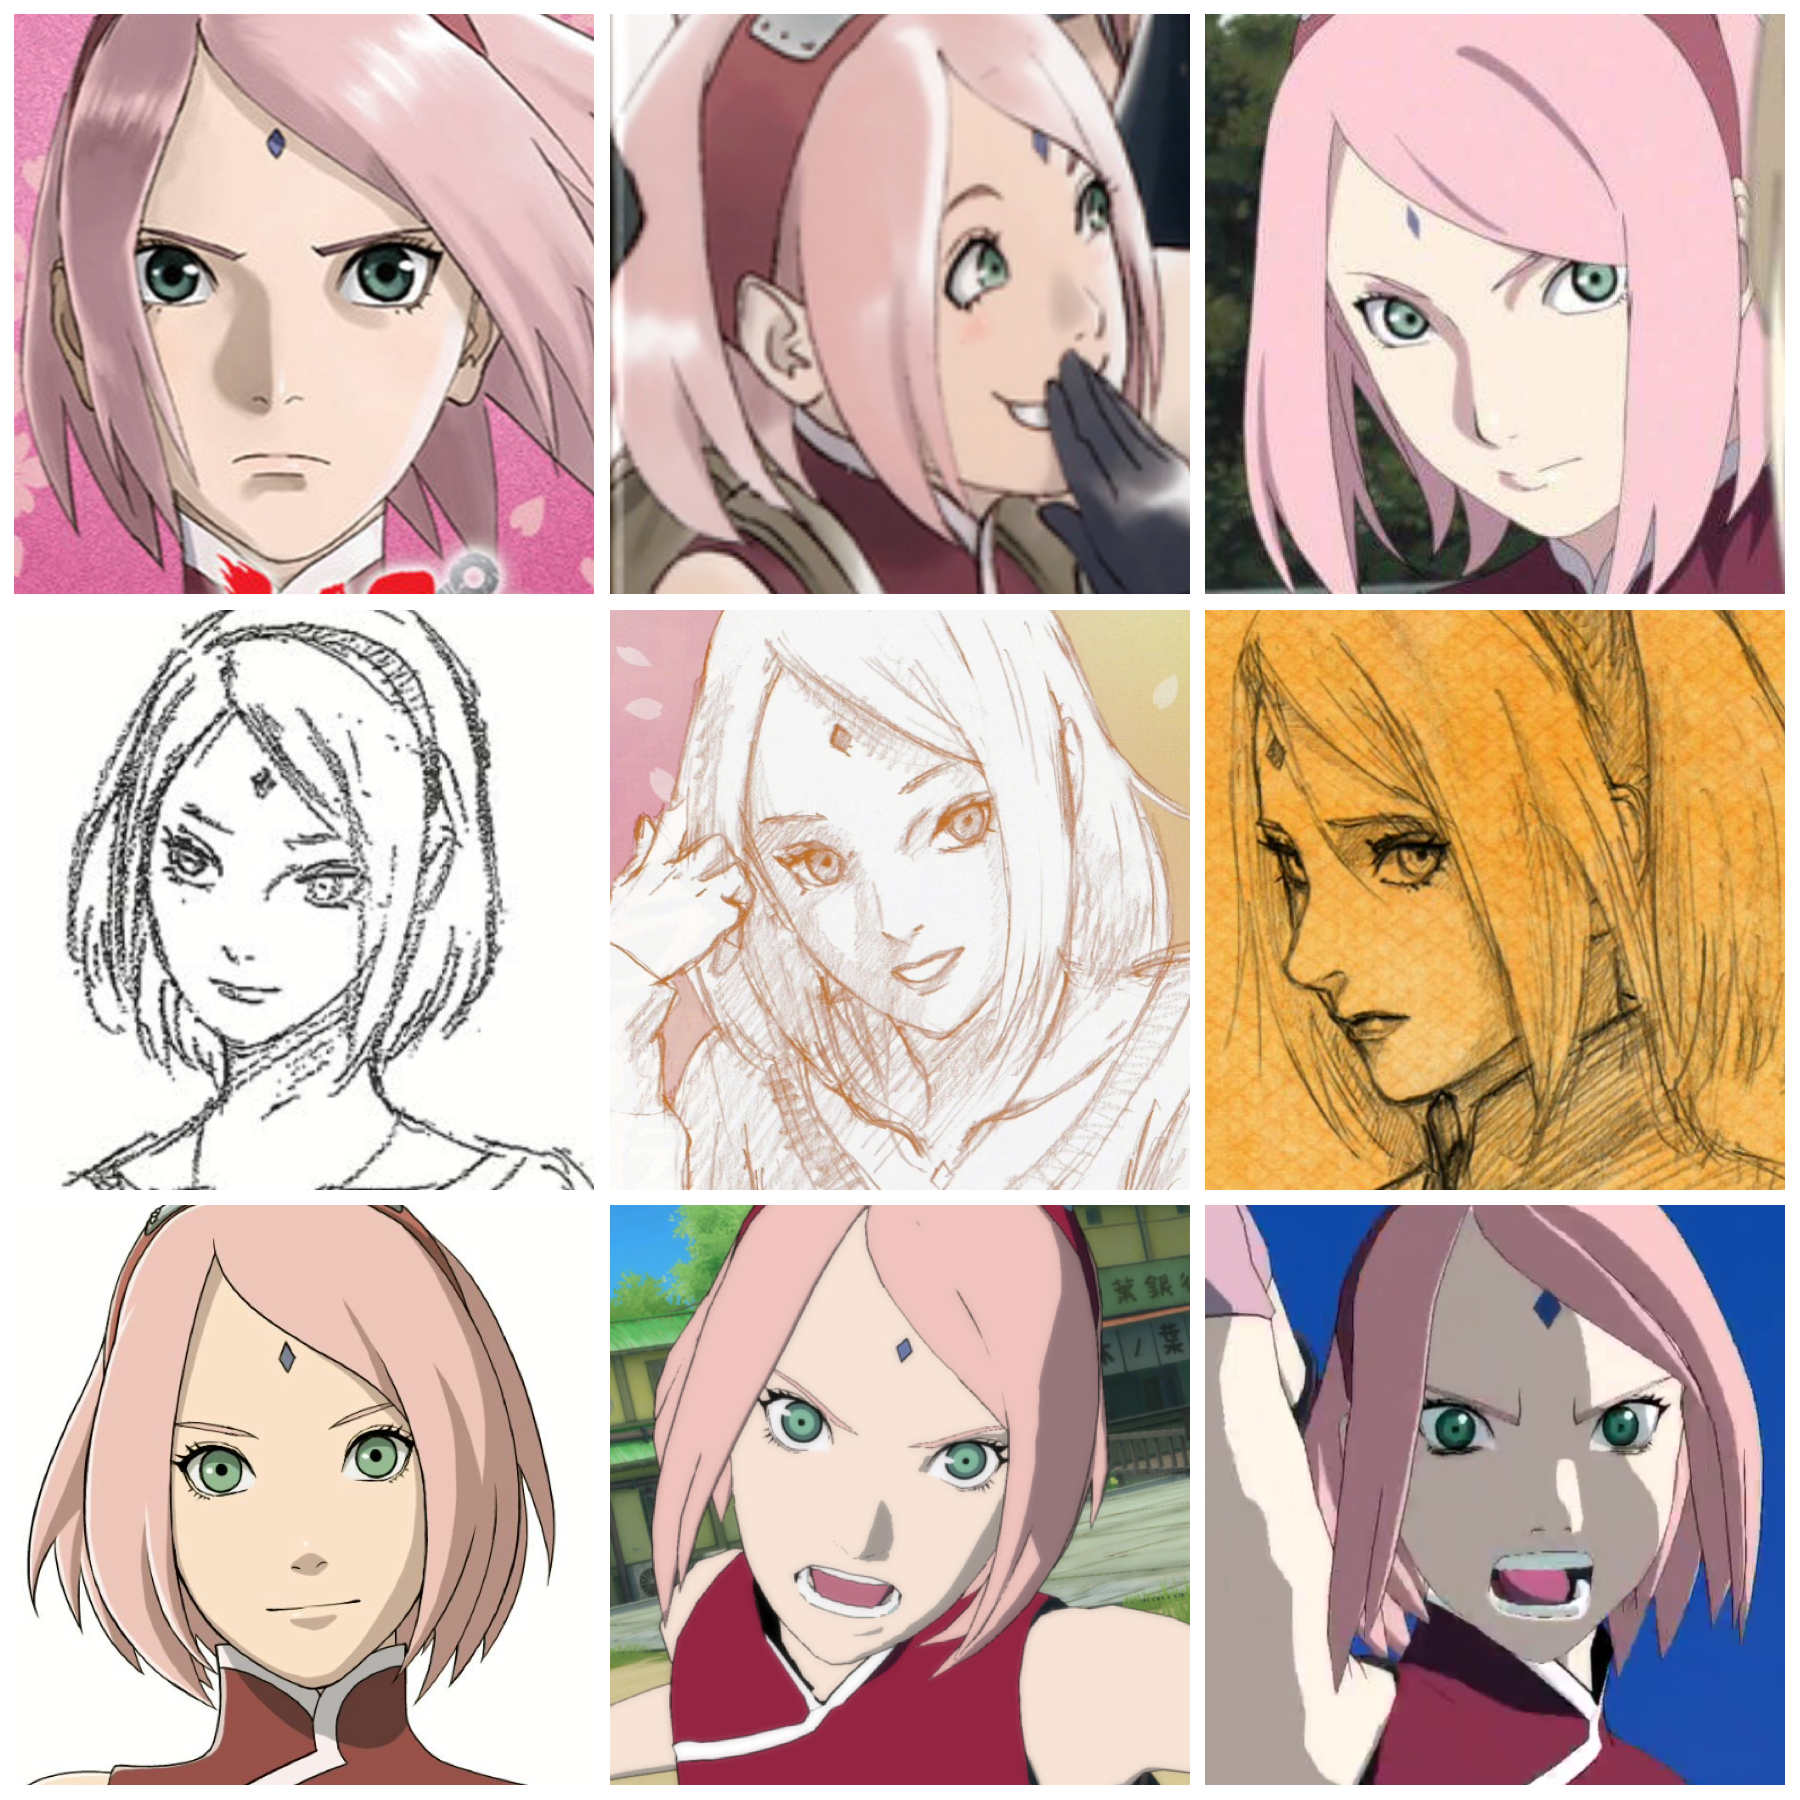 Haruno Sakura work by Studio pierrot , Masashi Kishimoto and from the game naruto ultimate ninja storm 4